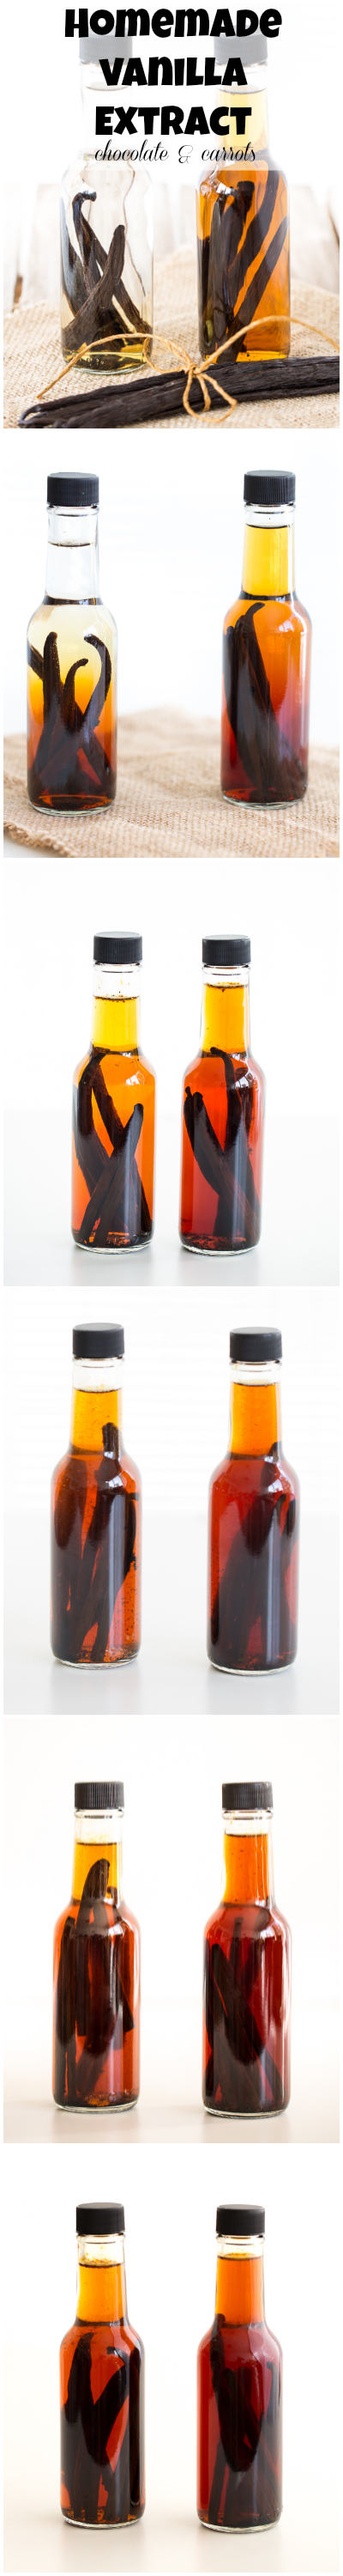 Homemade Vanilla Extract | chocolateandcarrots.com